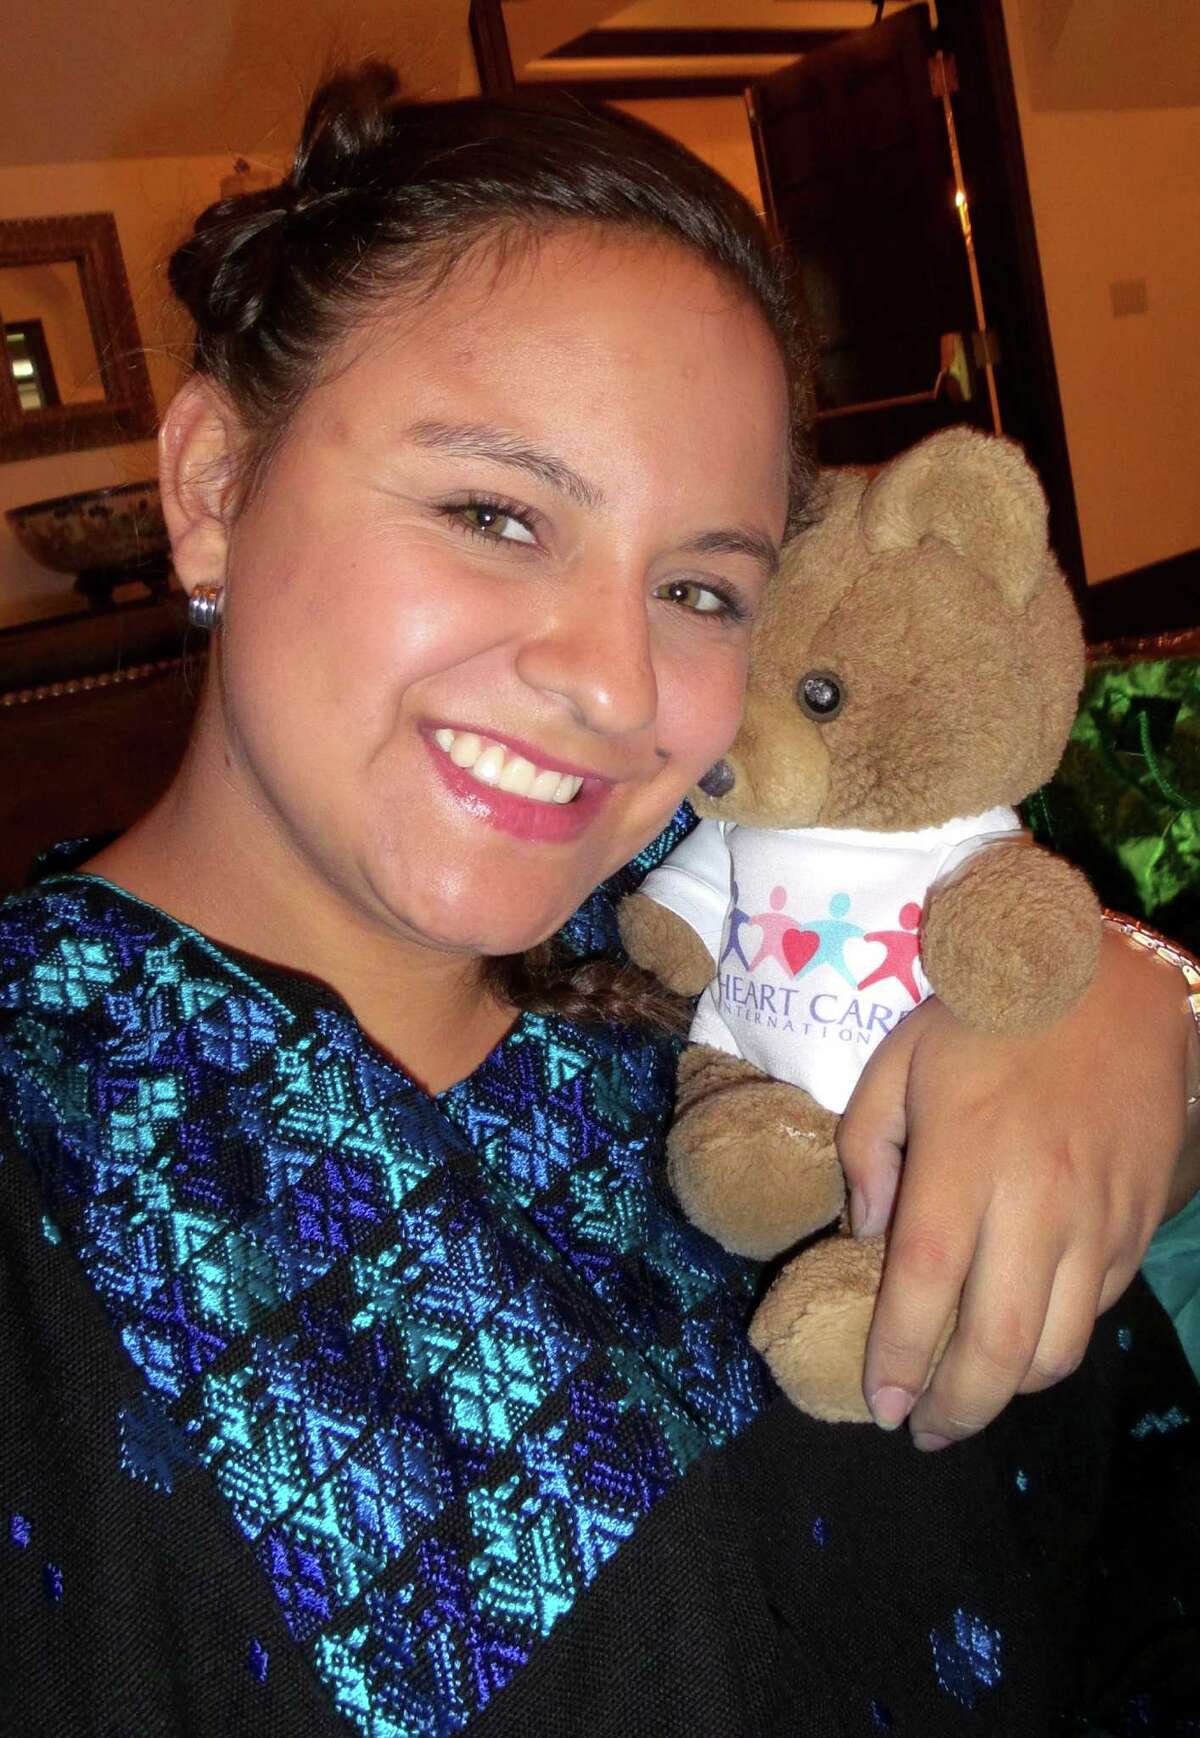 Claudia Maria Sarai Tujab hugs her teddy bear given to her at the the time of her heart surgery 19 years ago by a Heart Care International (HCI) medical team. Tujab says her teddy bear has been adopted by her little sister Melanie.